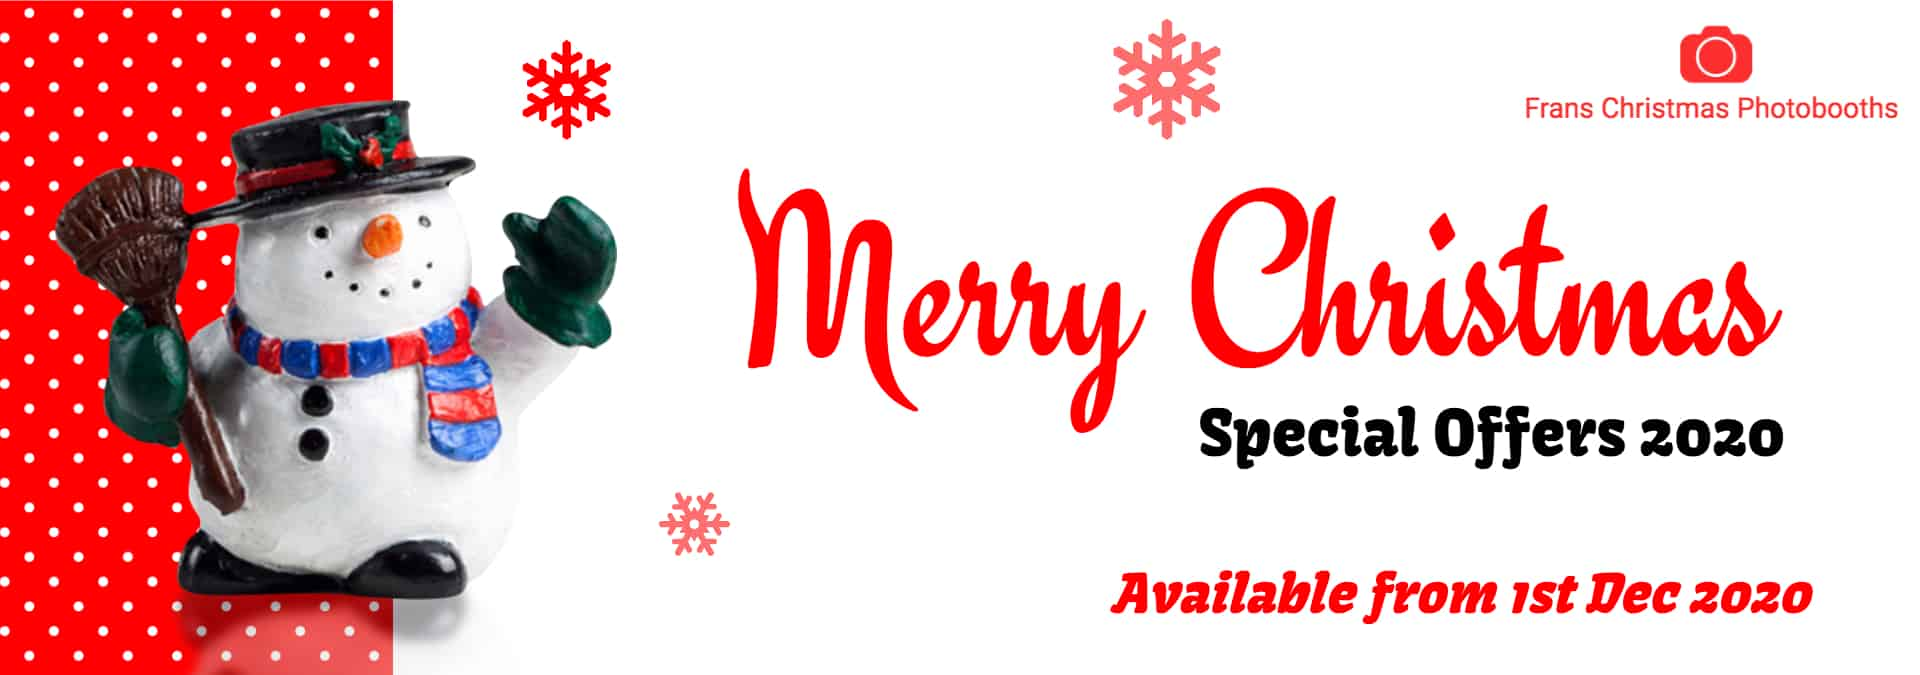 WebFPBChristmas Banner | Social Media Showcase | Web Development and Support Services